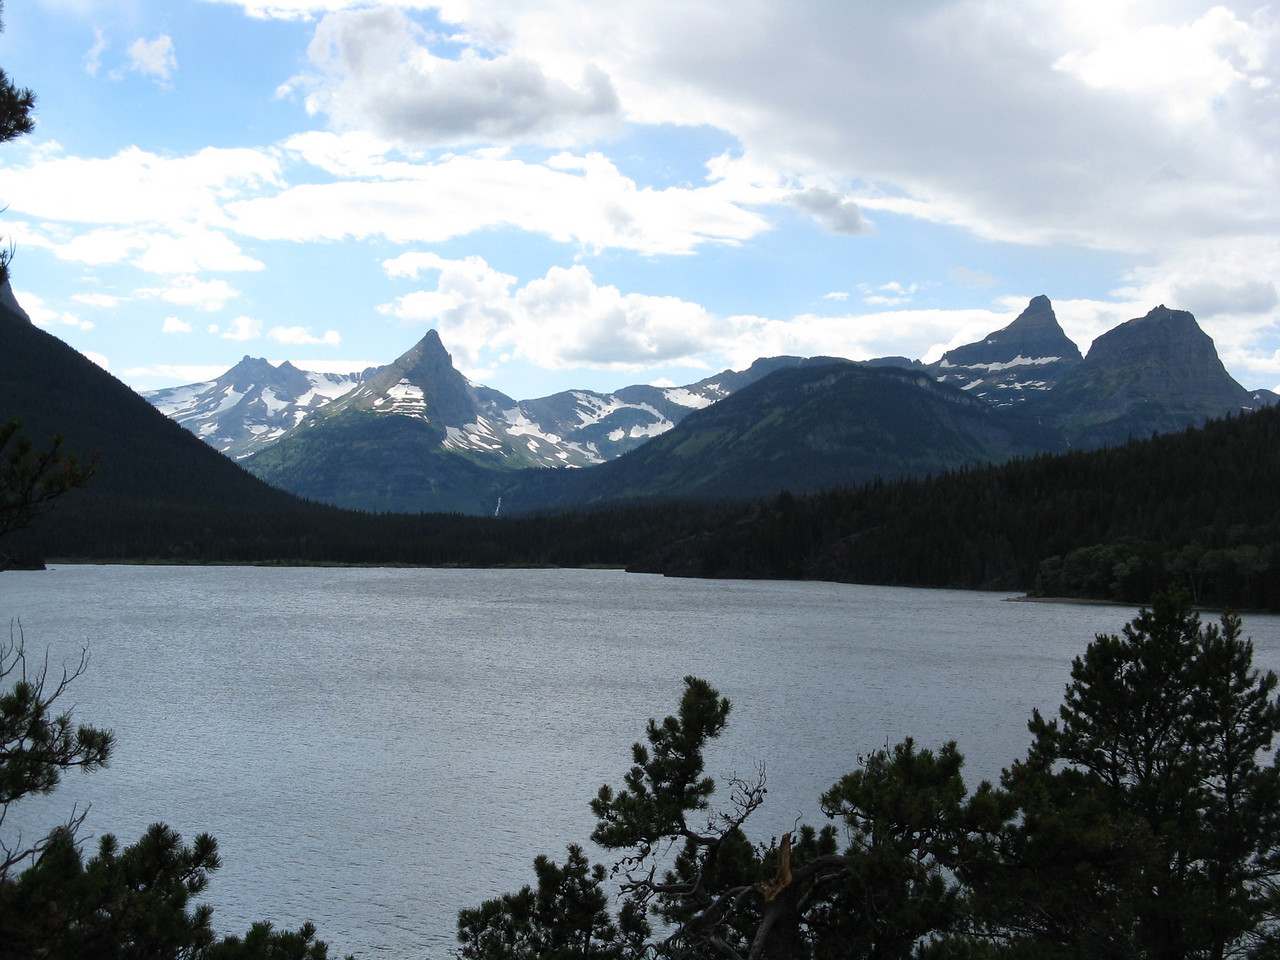 The last 9 miles or so of the road runs along Saint Mary Lake.  Here we are looking back towards the headwaters of the lake and towards Logan Pass.  I'm not sure of the names of the two pointed peaks in the distance.